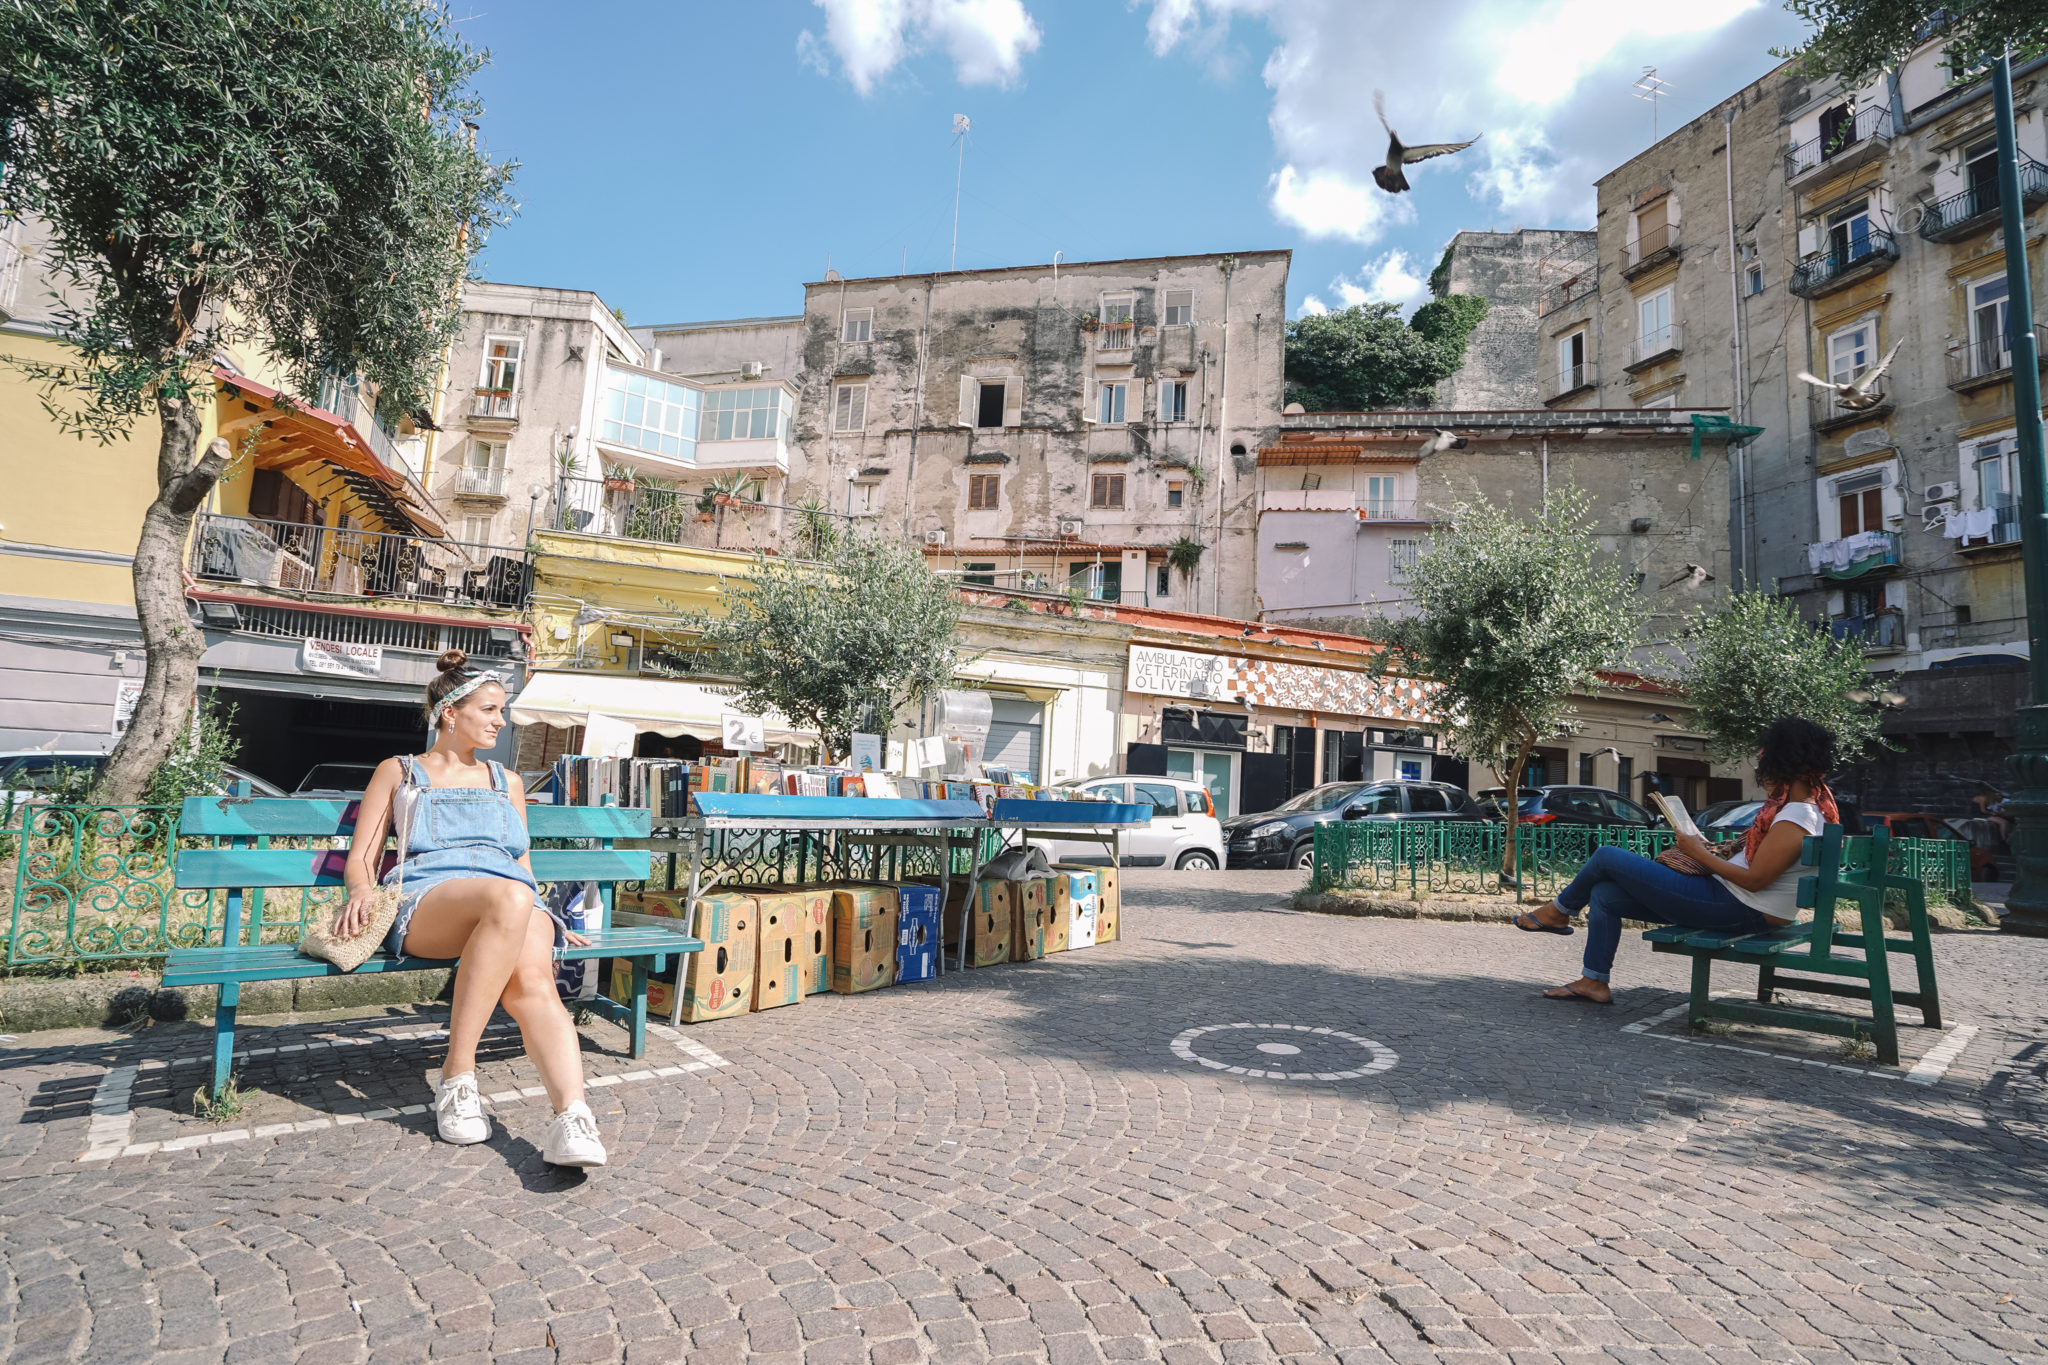 visiter-naples-city-guide-piazza